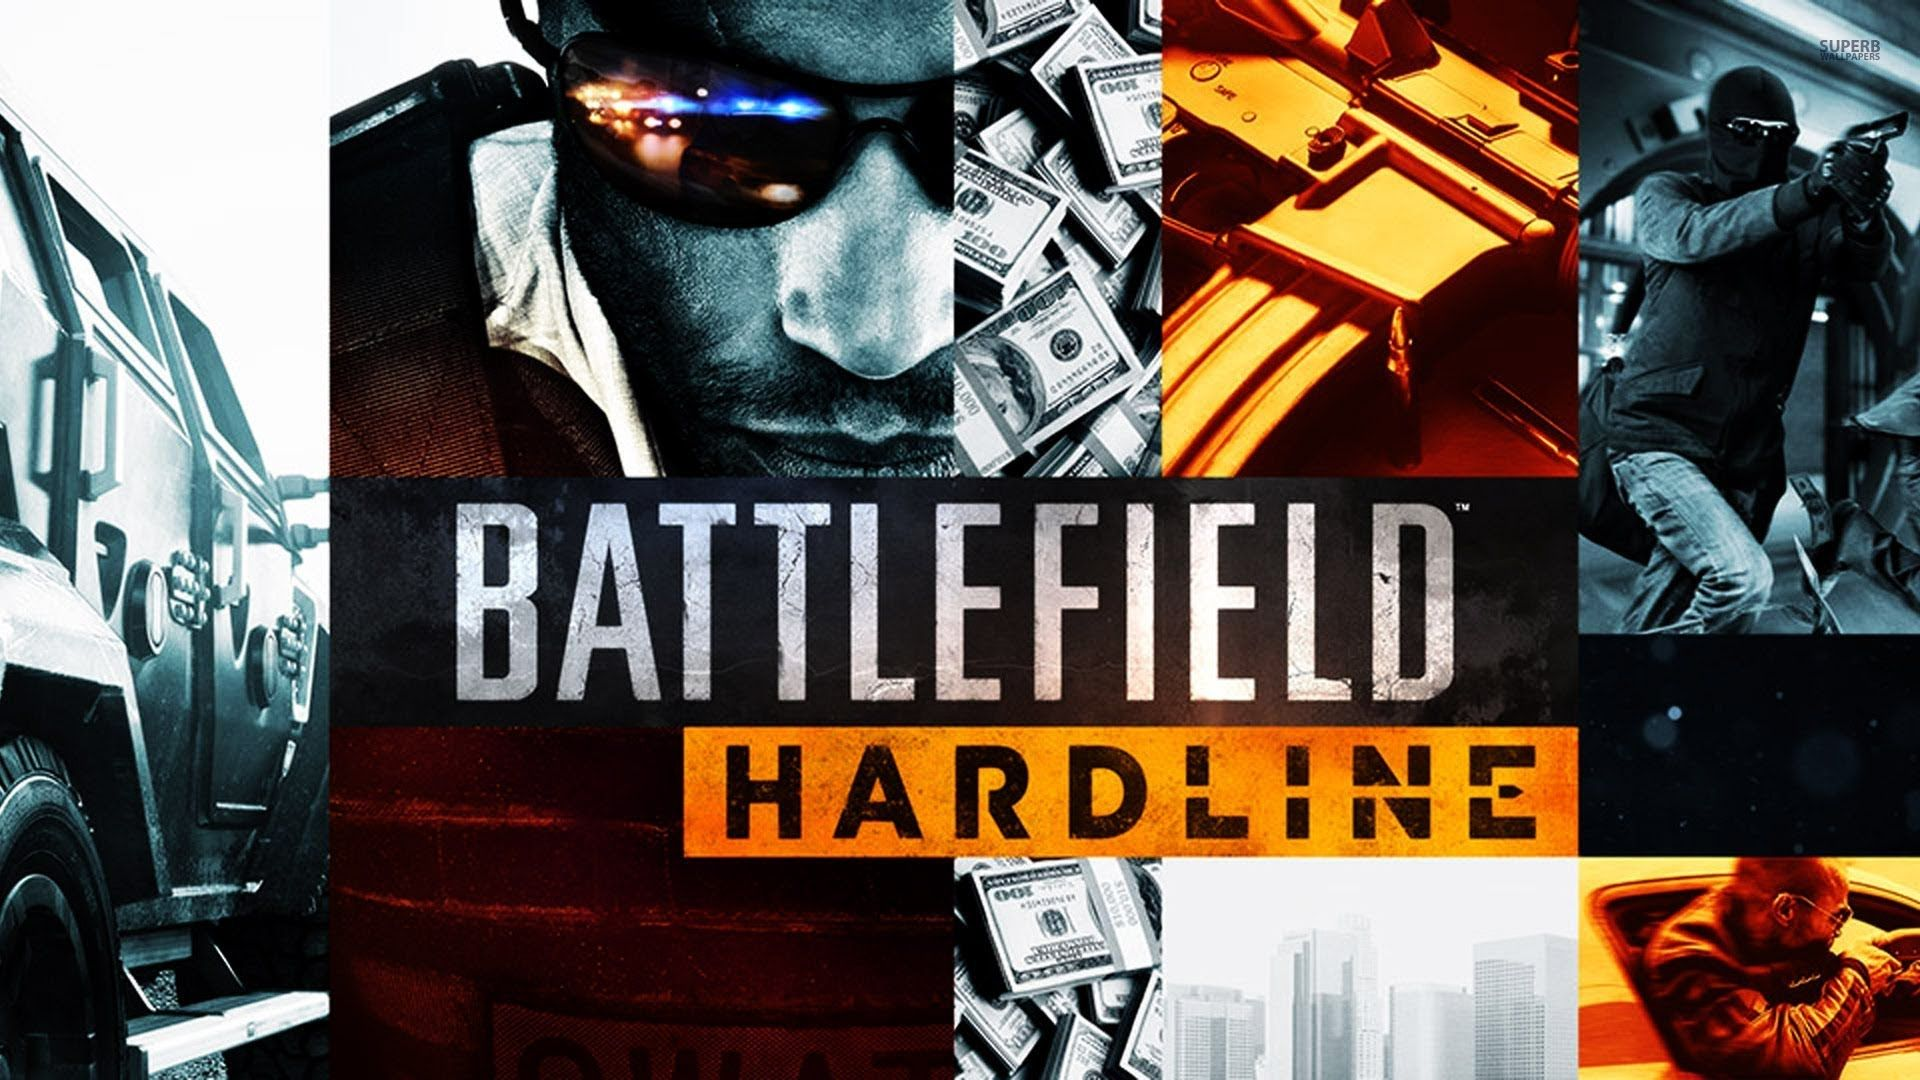 Battlefield Hardline Xbox One 1080 P Gamplay Part 01